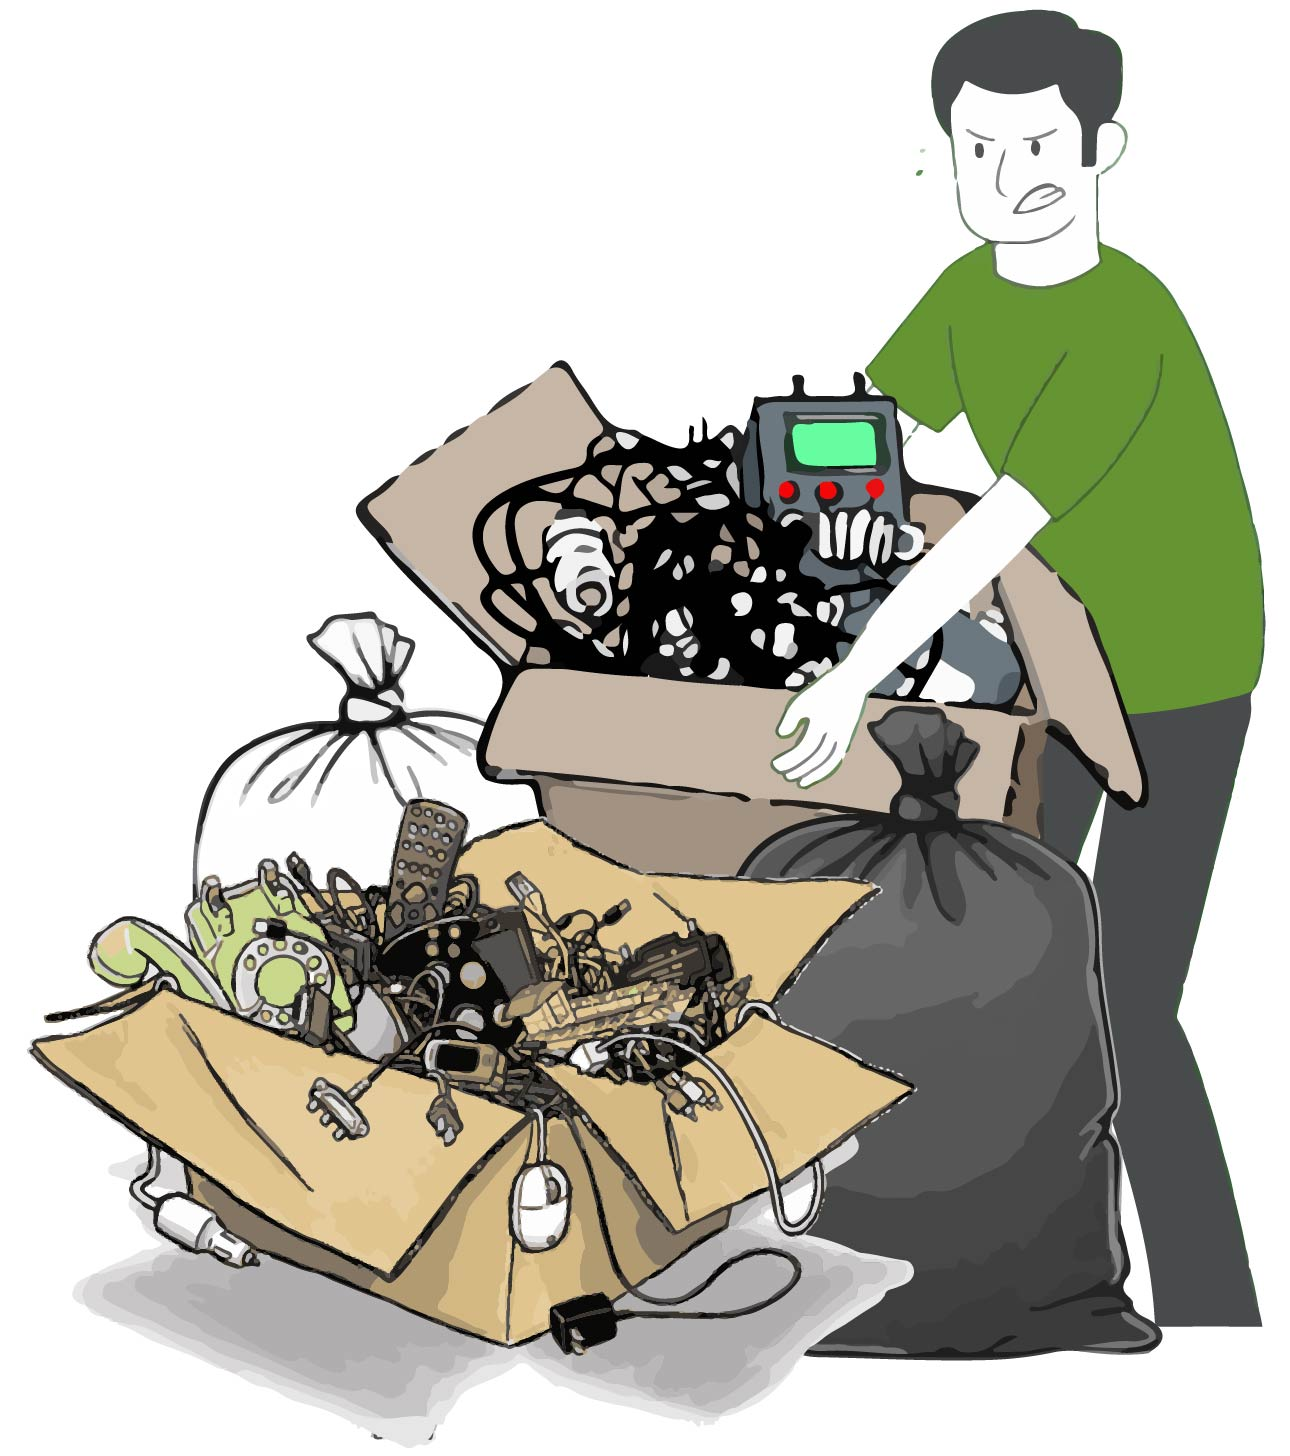 Affordable Junk Removal Services in Carbondale IL